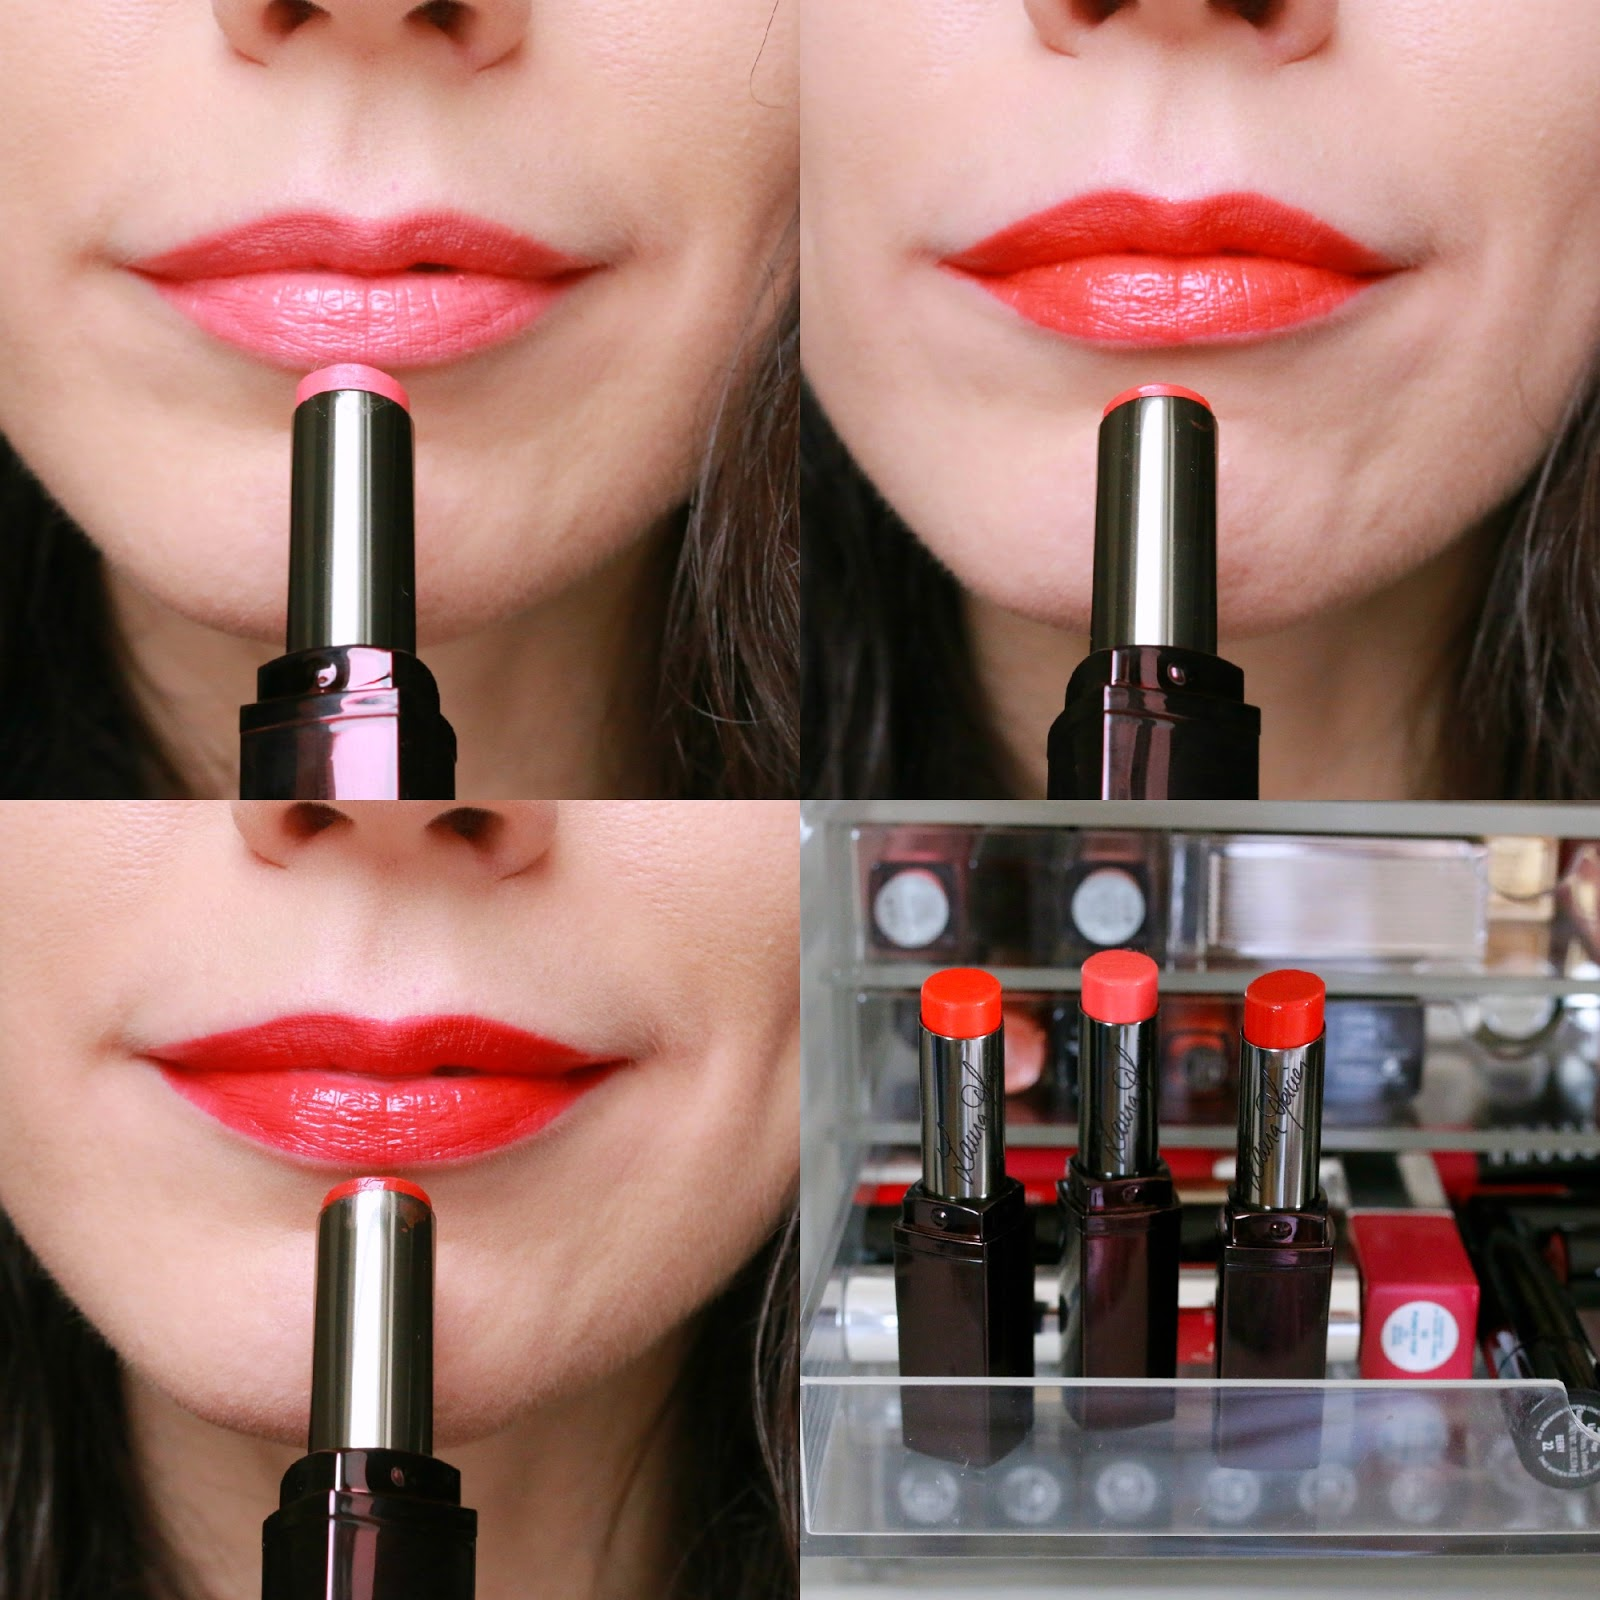 Laura Mercier Lip Parfait Colourbalm swatches